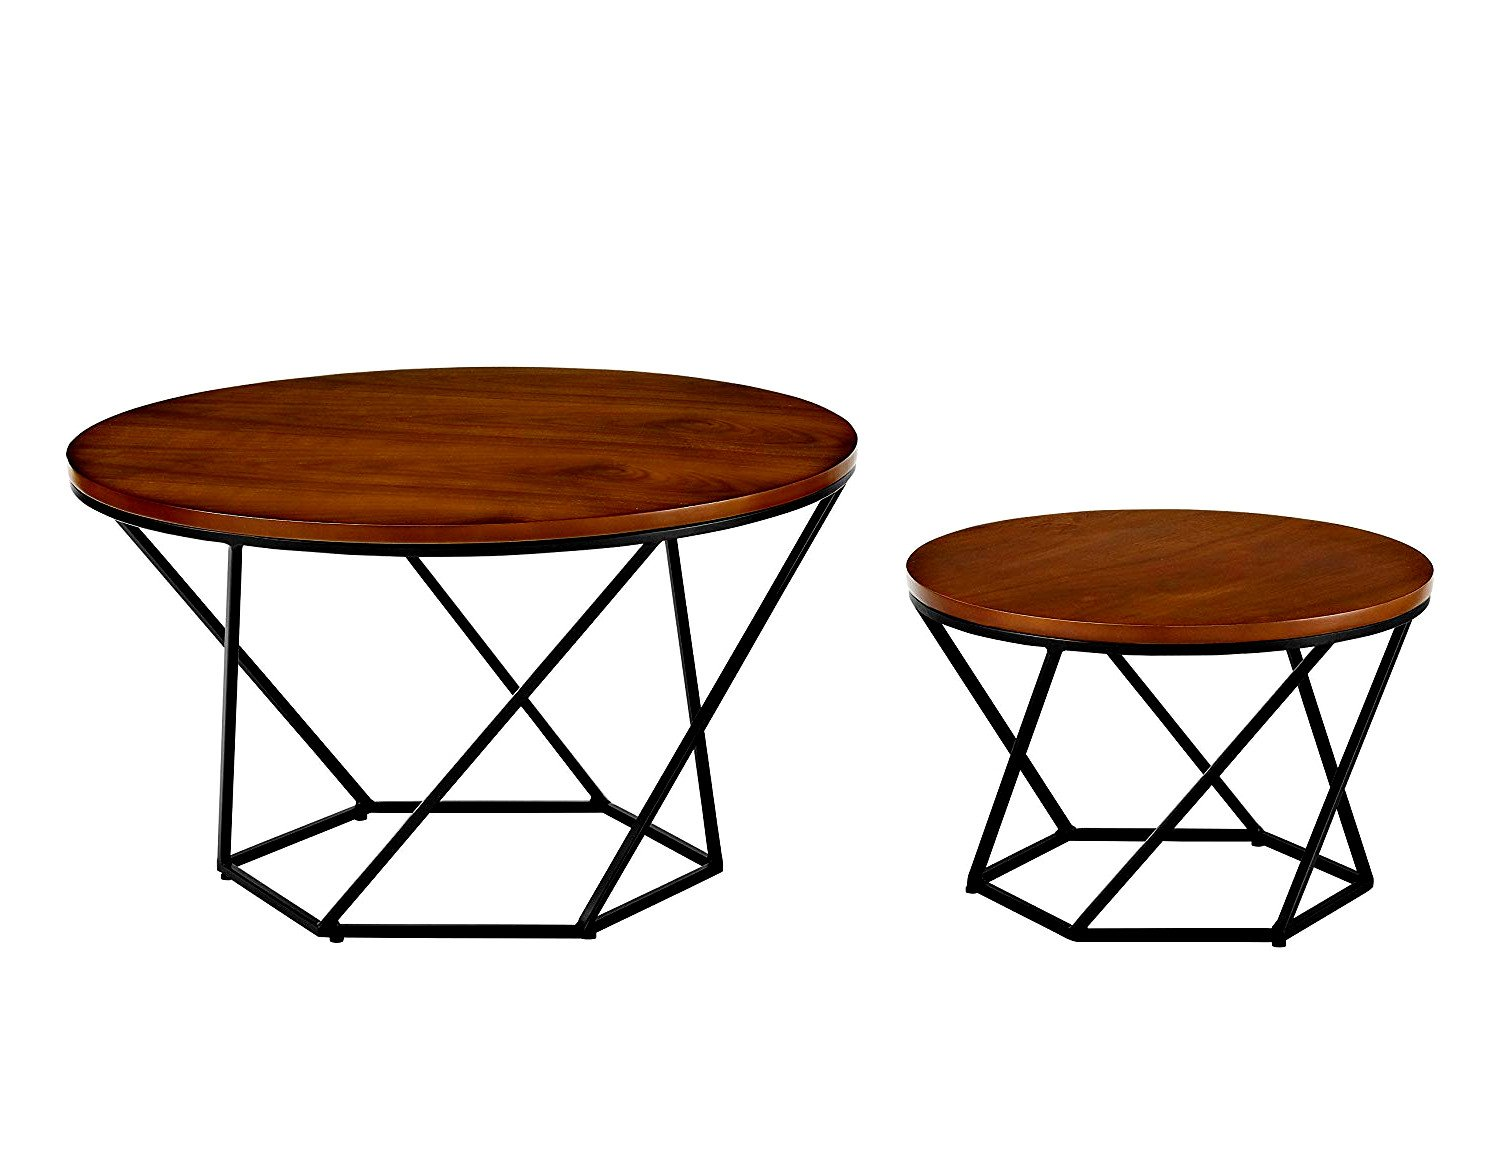 Nesting tables set of 2 end tables round with metal frame in black finish and brown wooden table top small big circular classic elegant design home